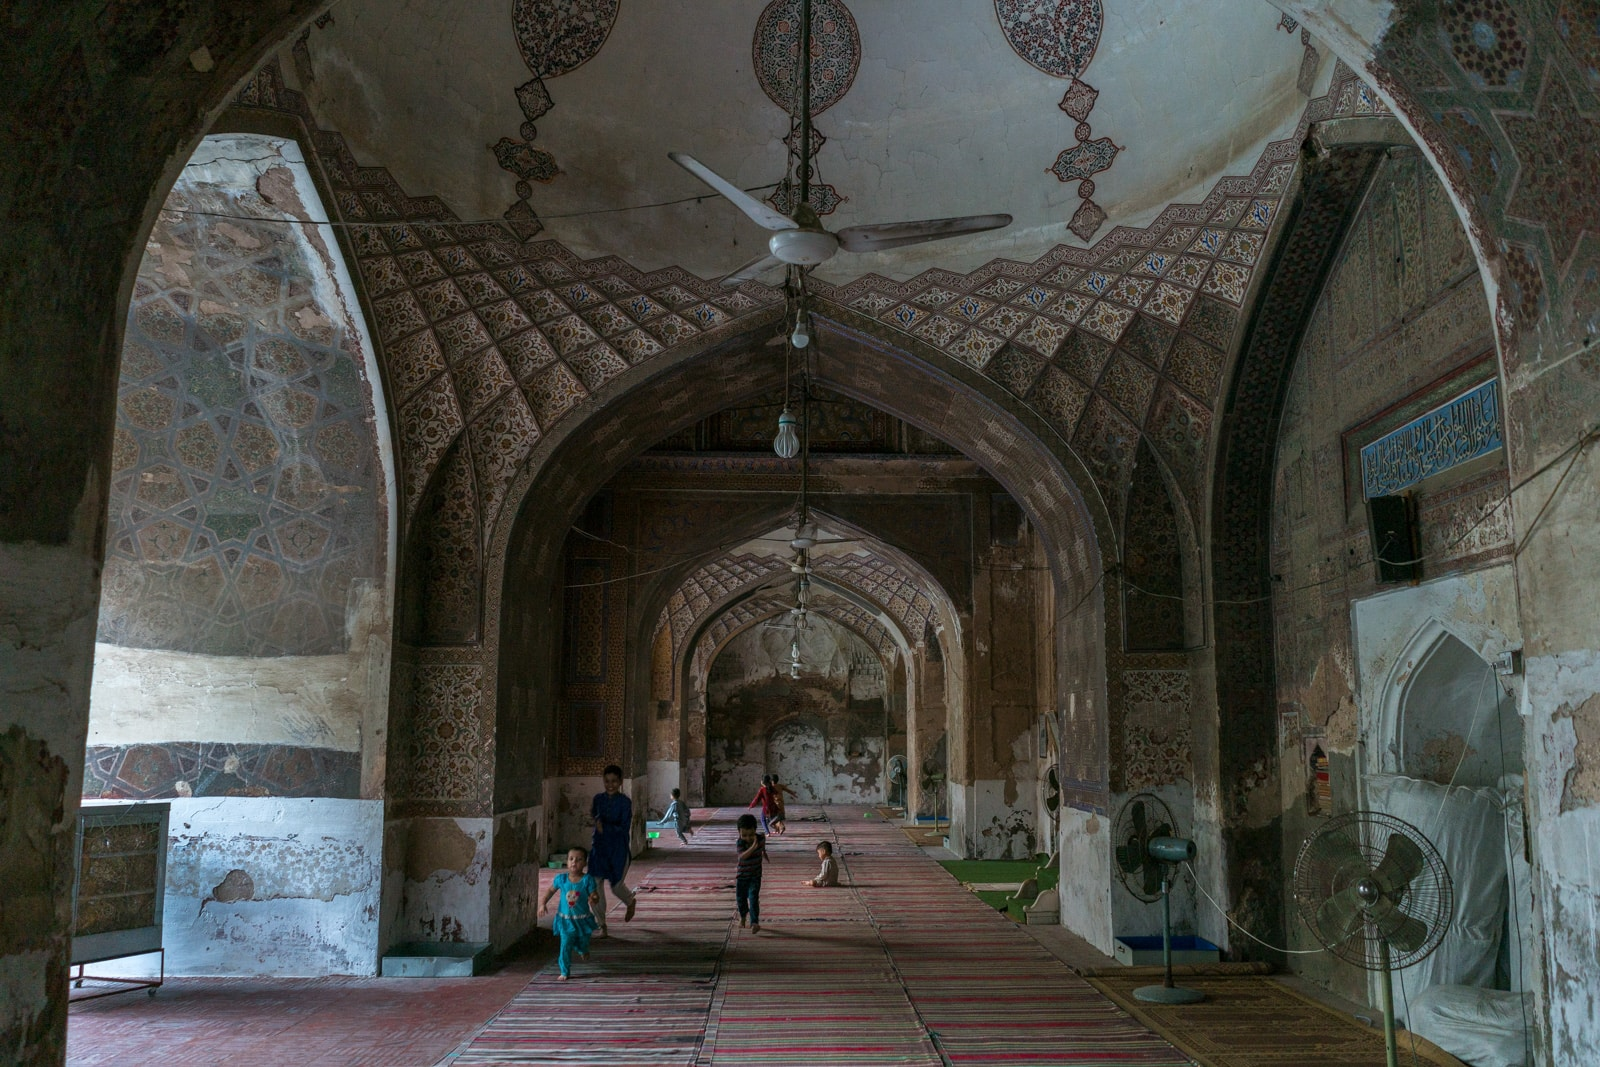 Unique things to do in Lahore - Children playing in Miryam Zamani mosque in Lahore, Pakistan